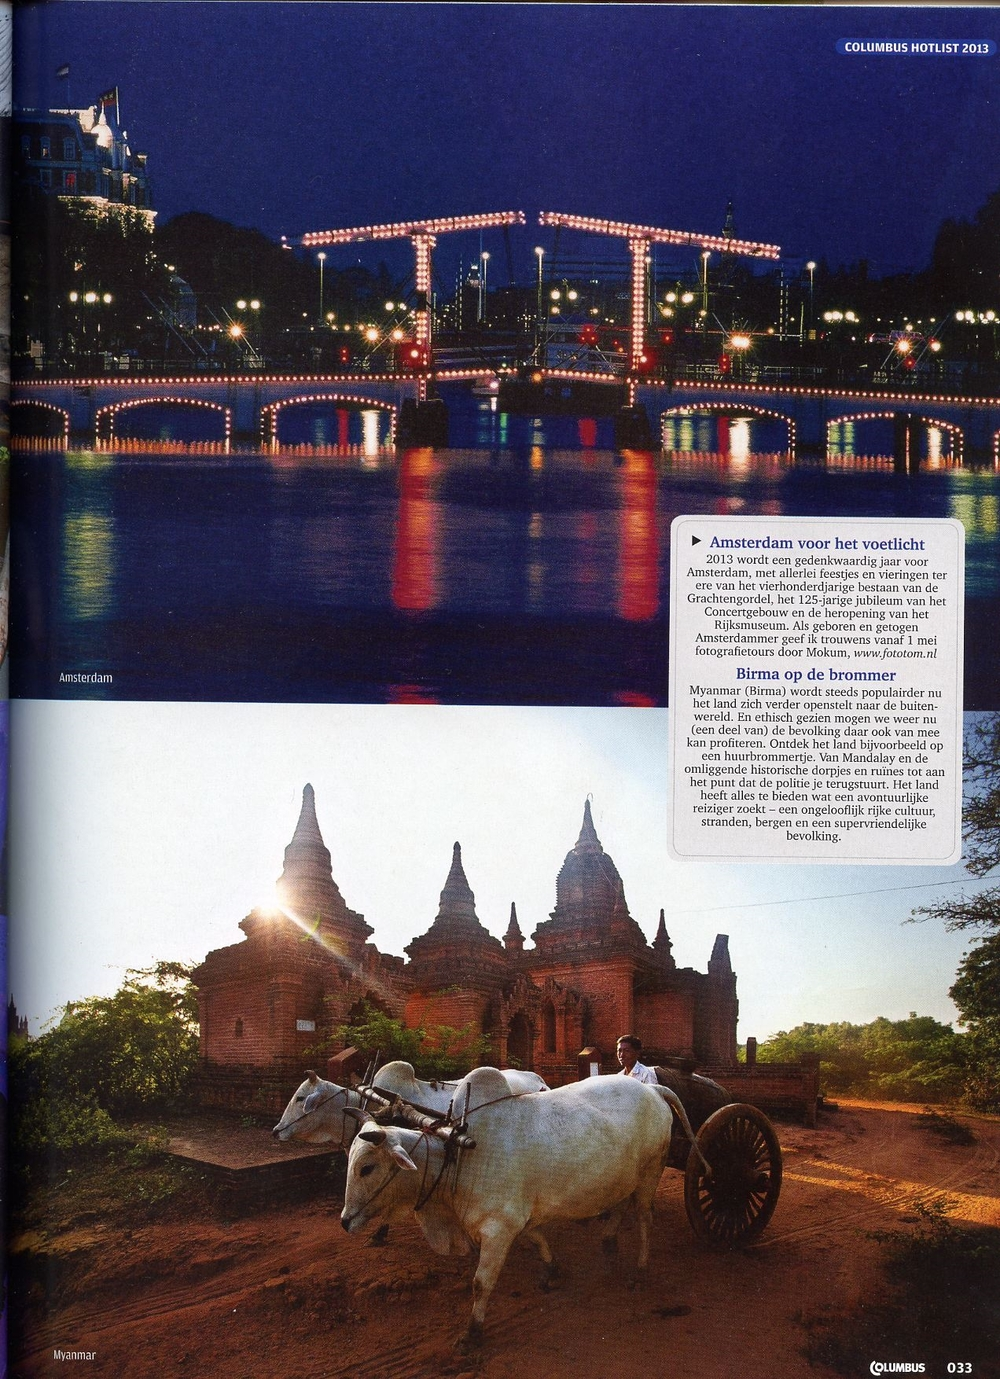 Columbus Magazine, Nº 43, 2013. Phototour by Night.